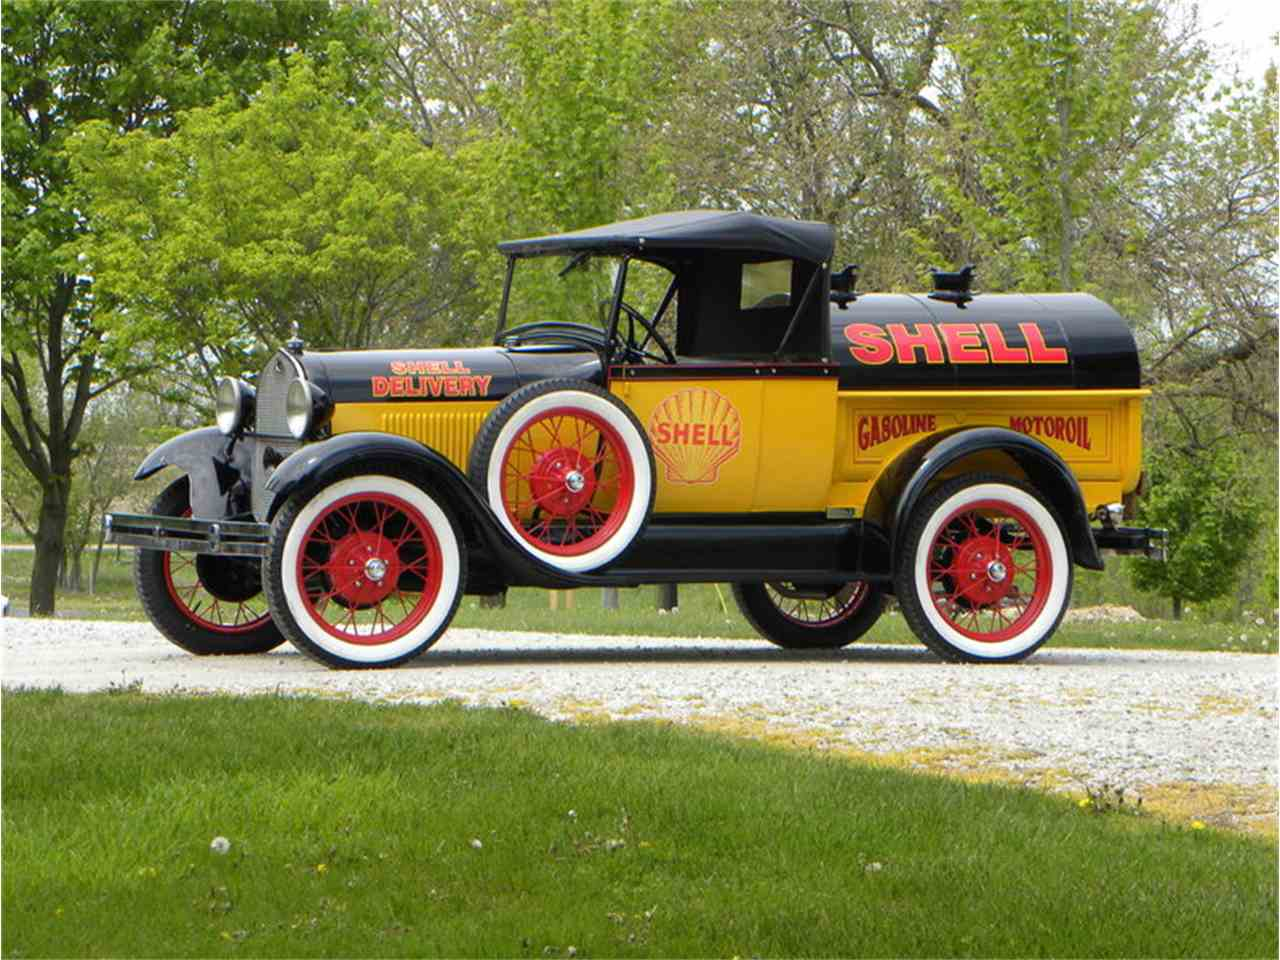 Large Picture of '29 Model A Roadster Pickup Tribute Shell Oil Tanker - LT8A